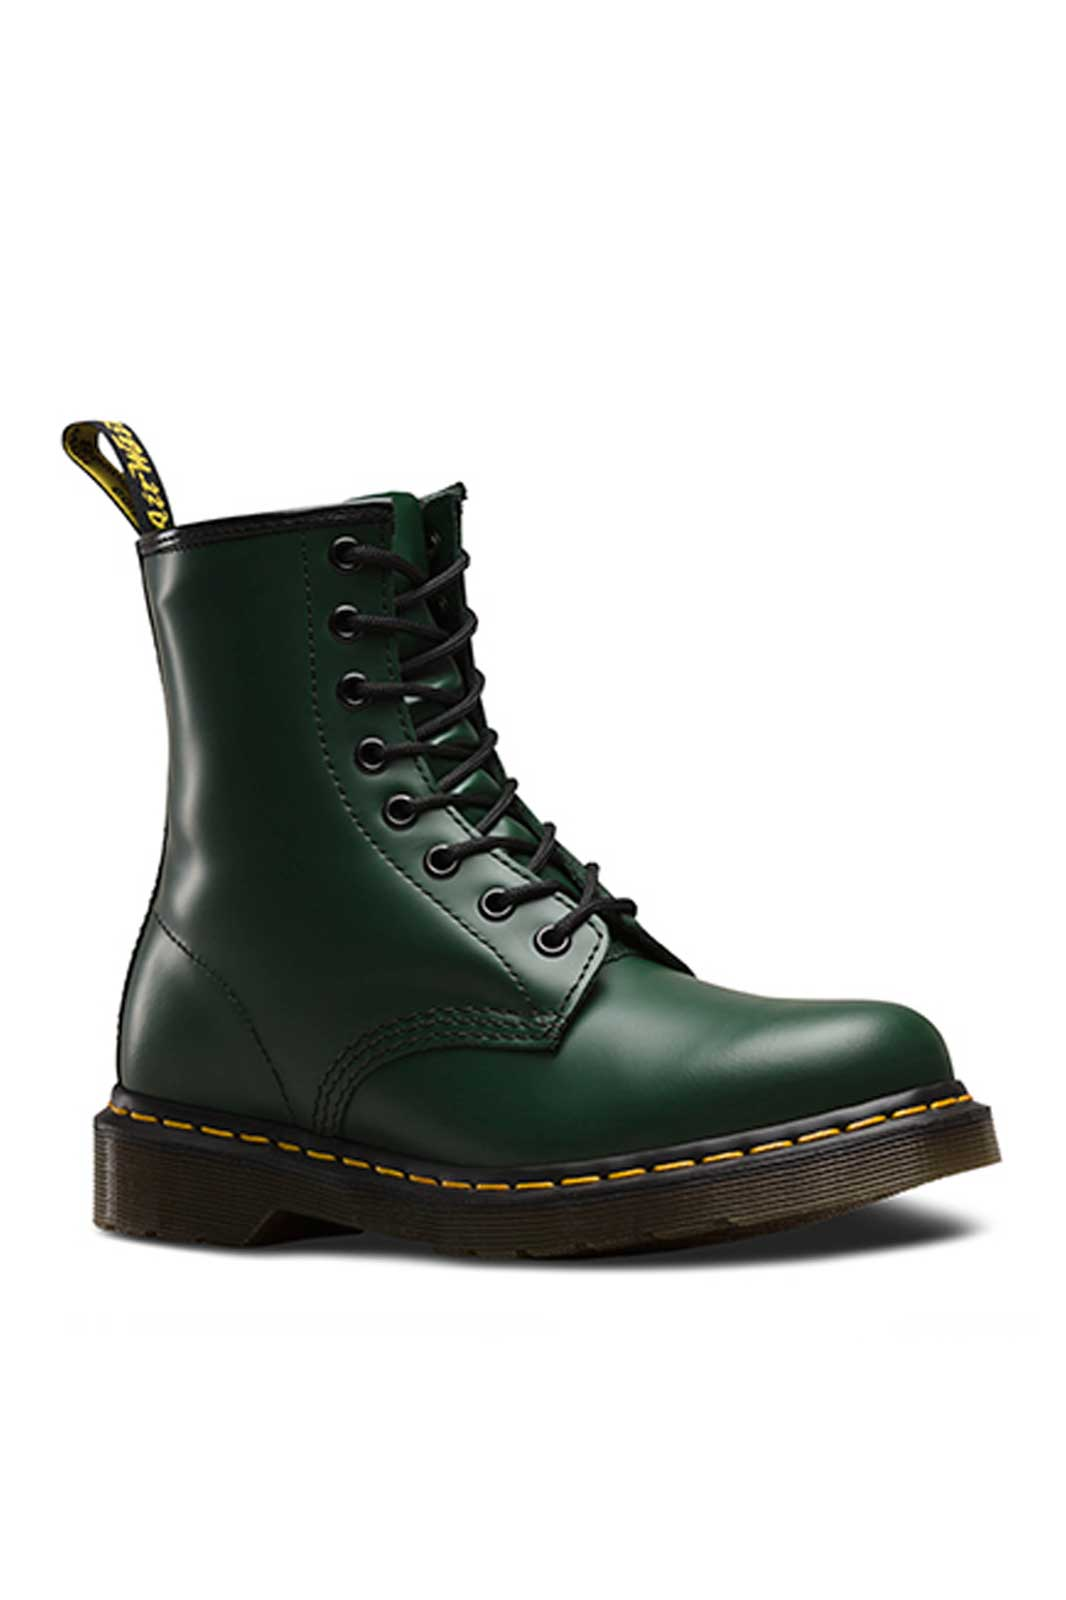 1460 8 Eye Green Dr Martens